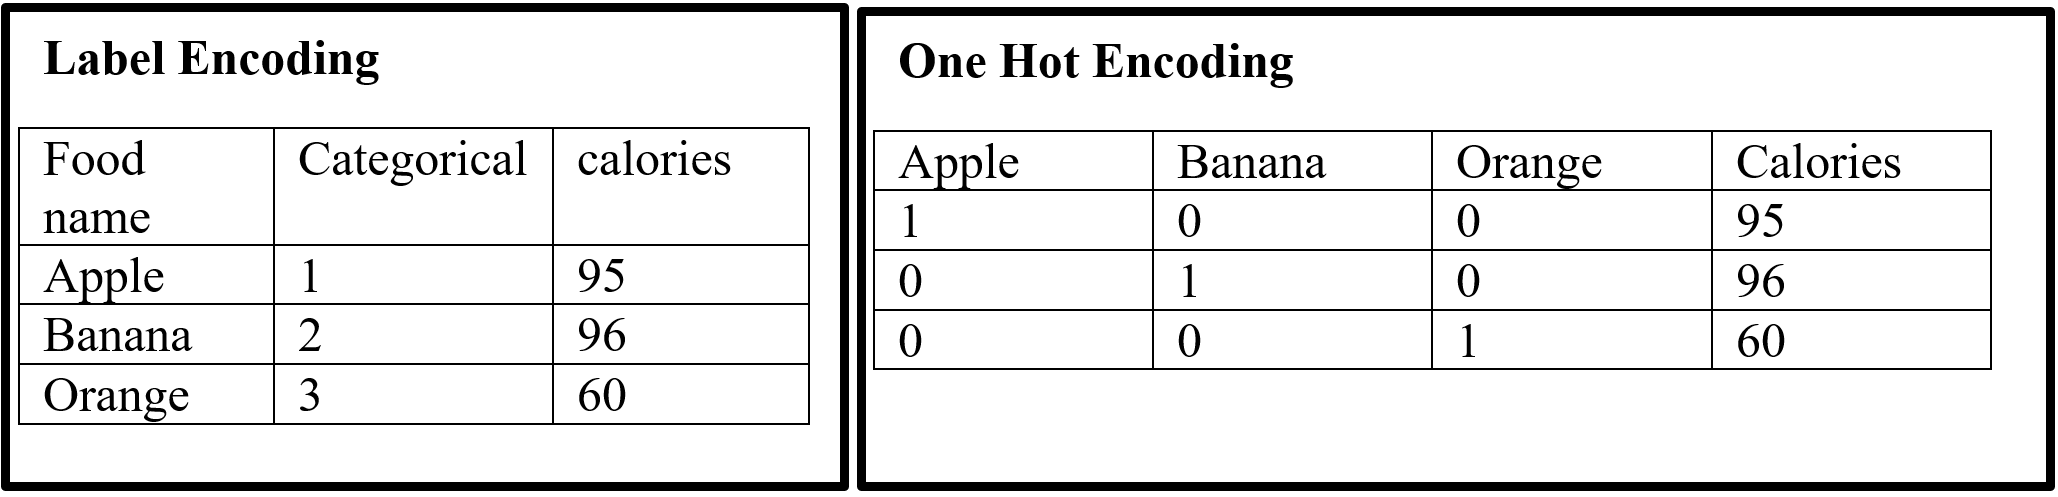 Label Encoding and One-Hot-Encoding